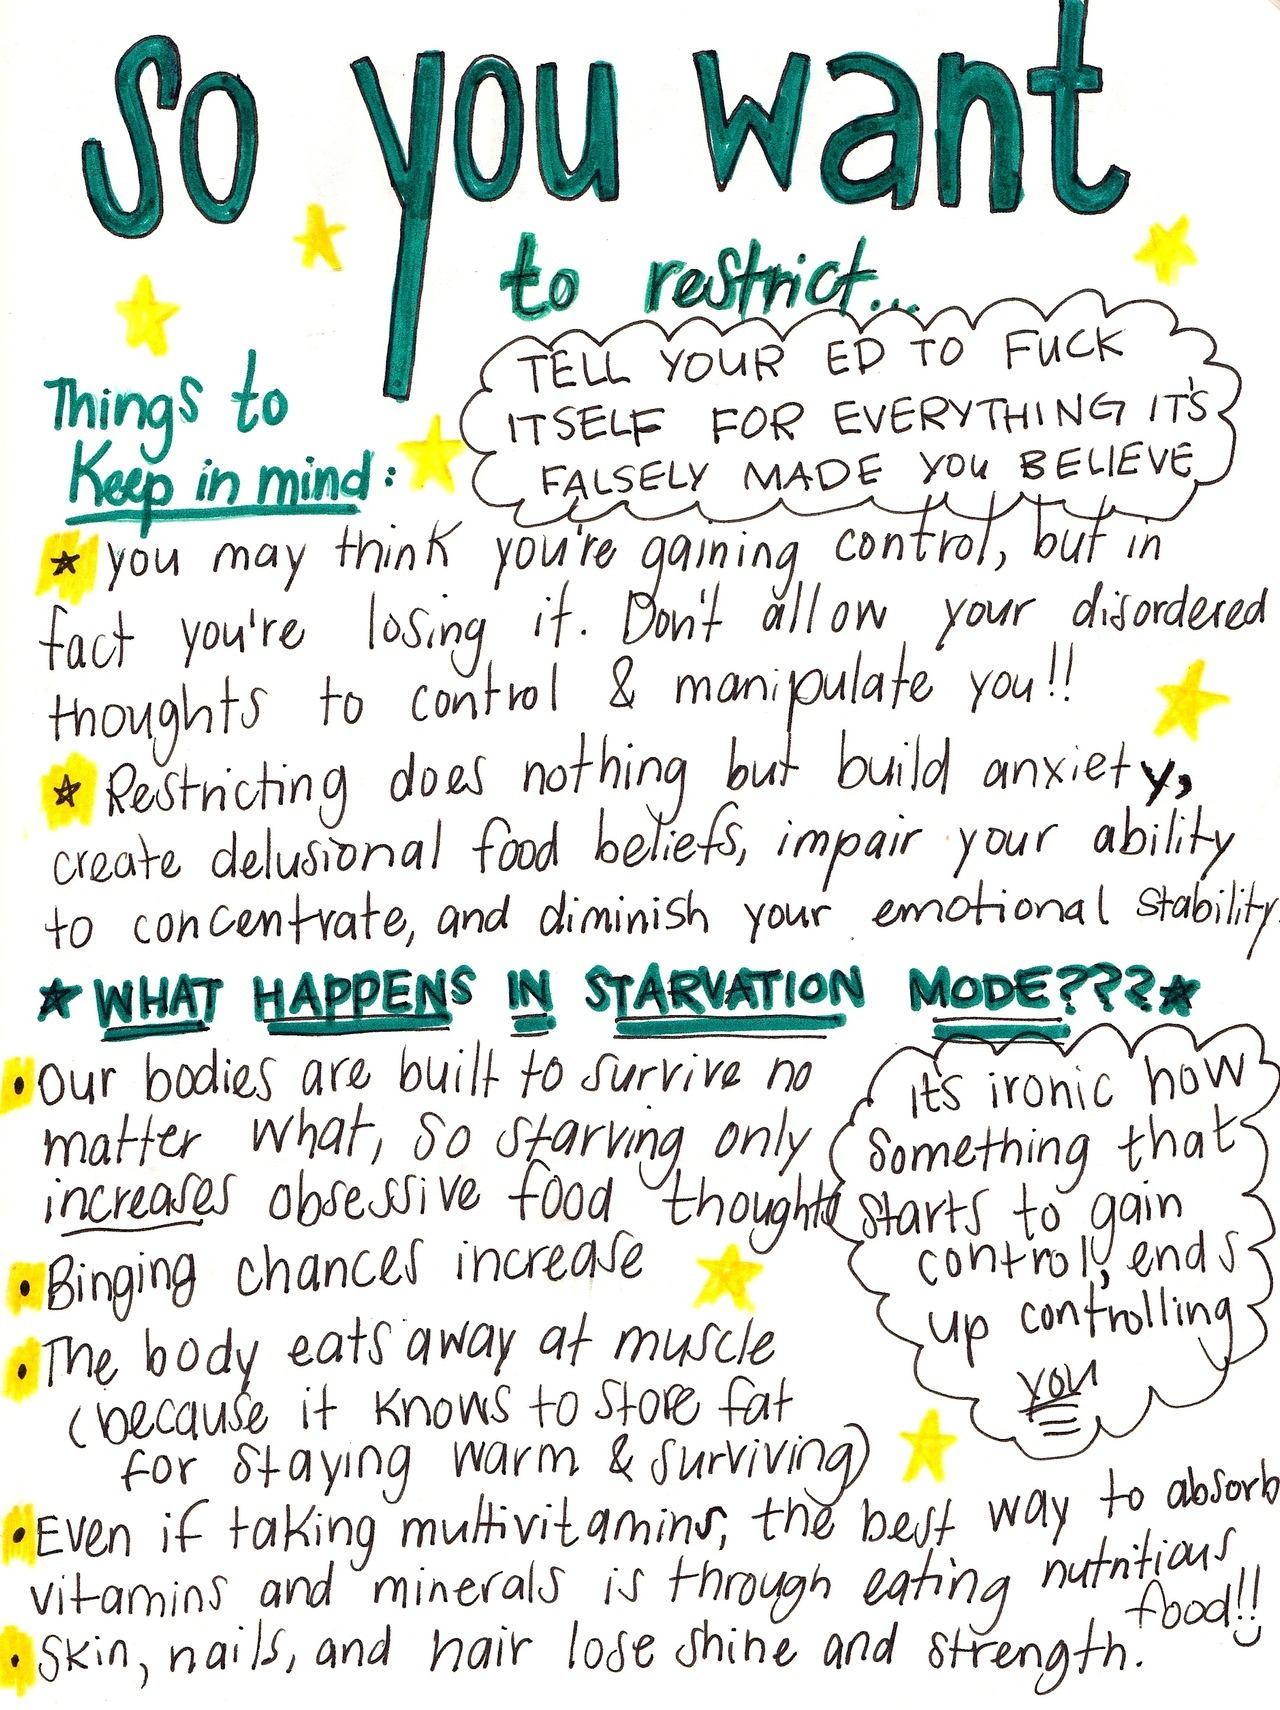 A Life Without Anorexia Recovery Motivation Reminders